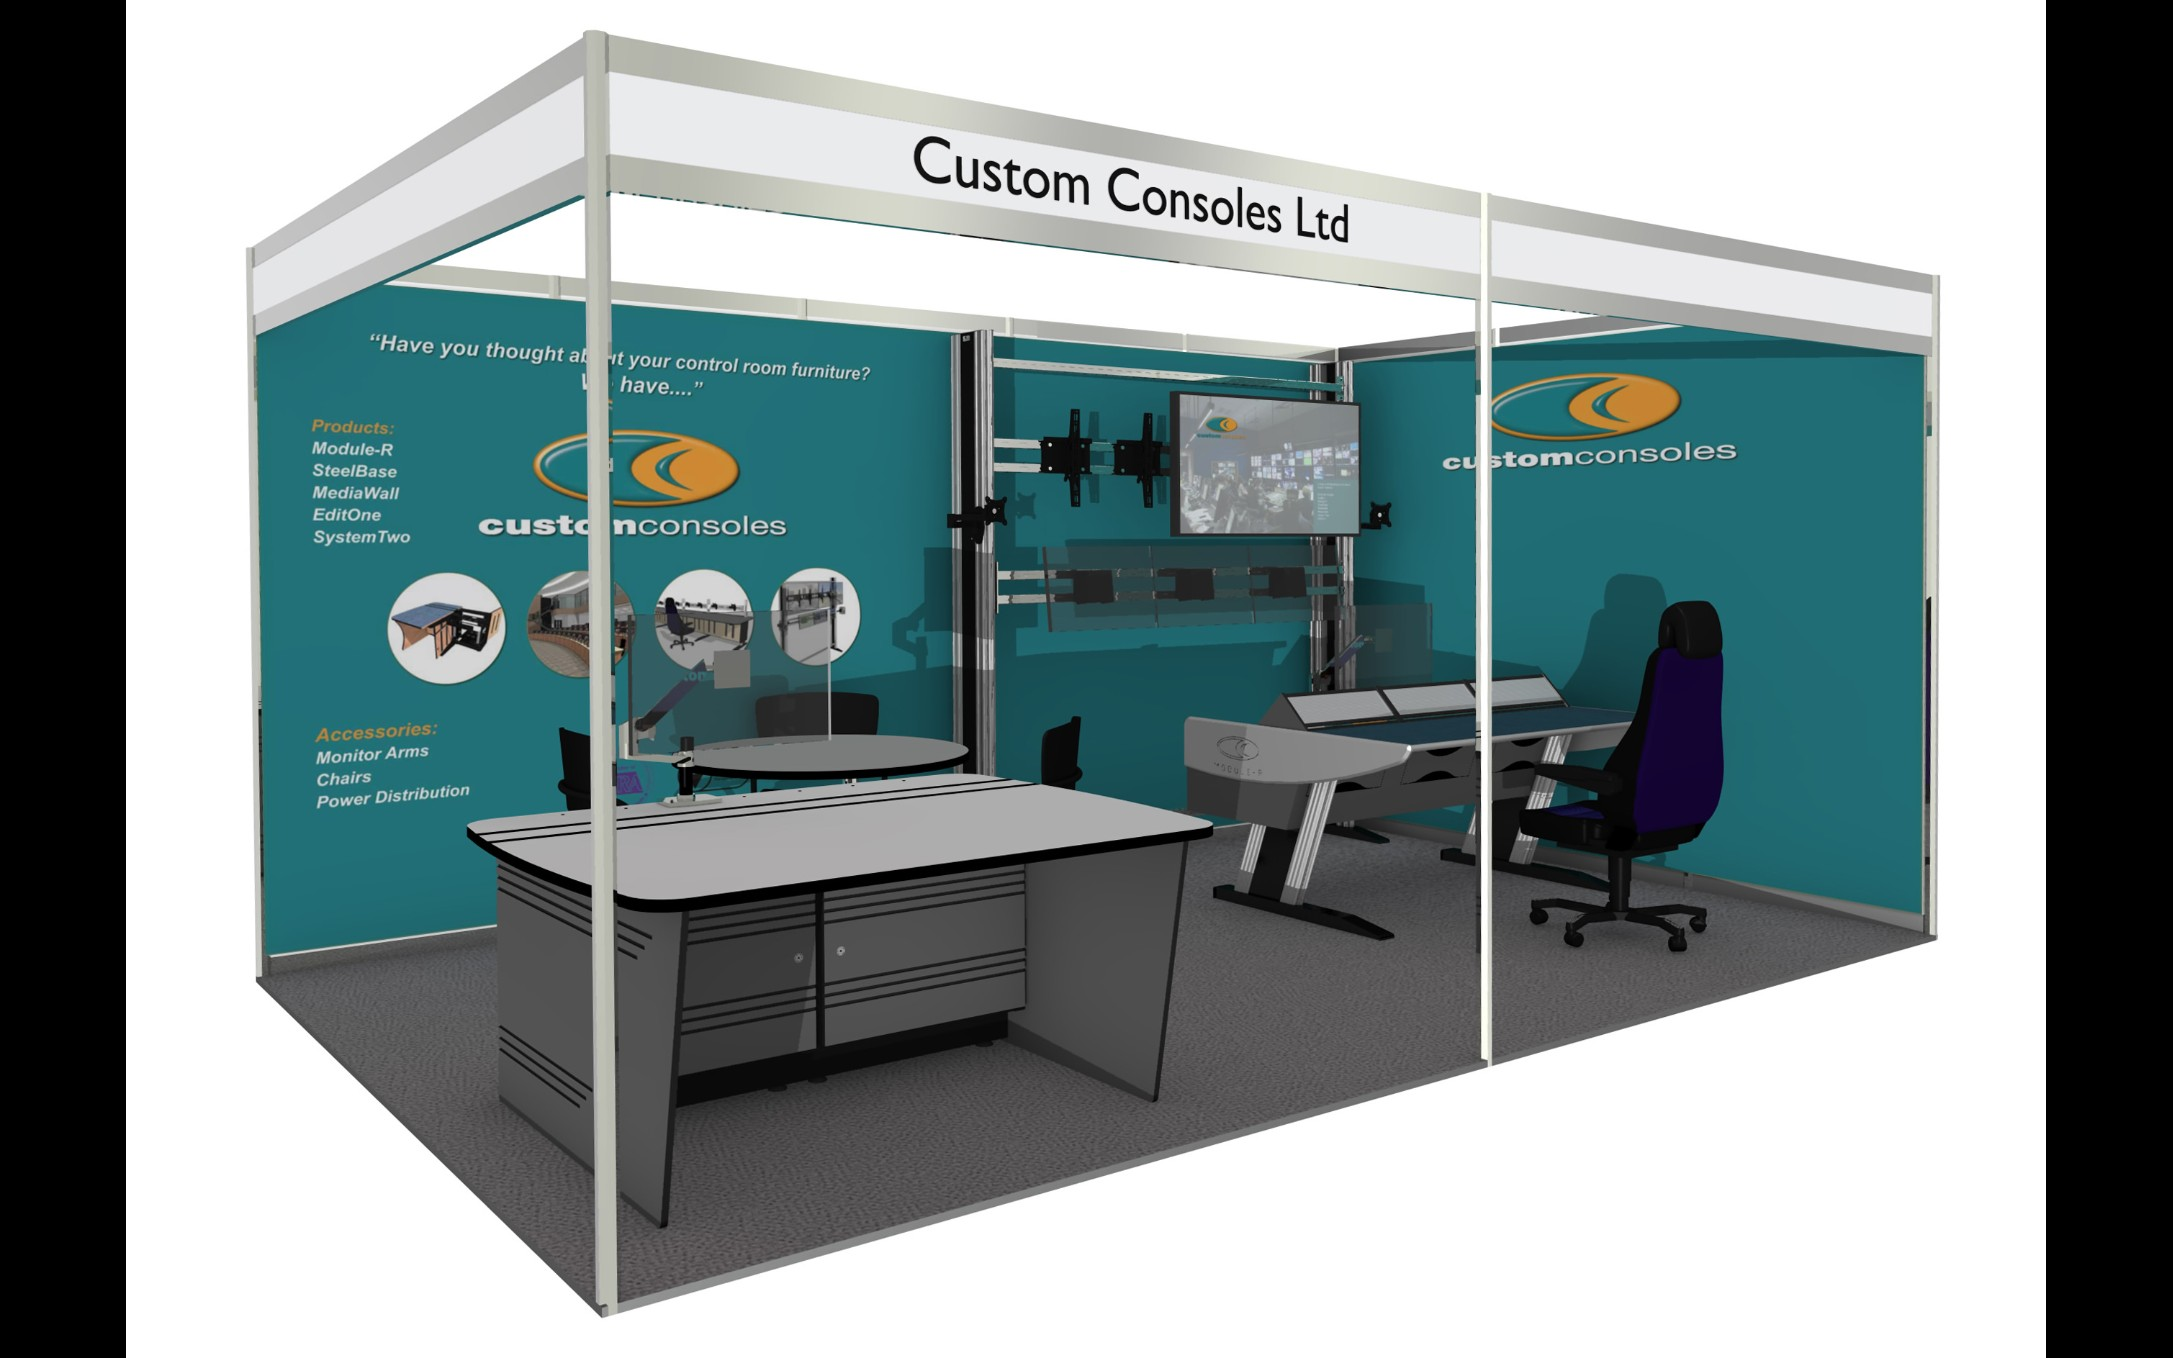 Custom Consoles to Introduce Latest SteelBase Desk at British-Irish Airports Expo 2019